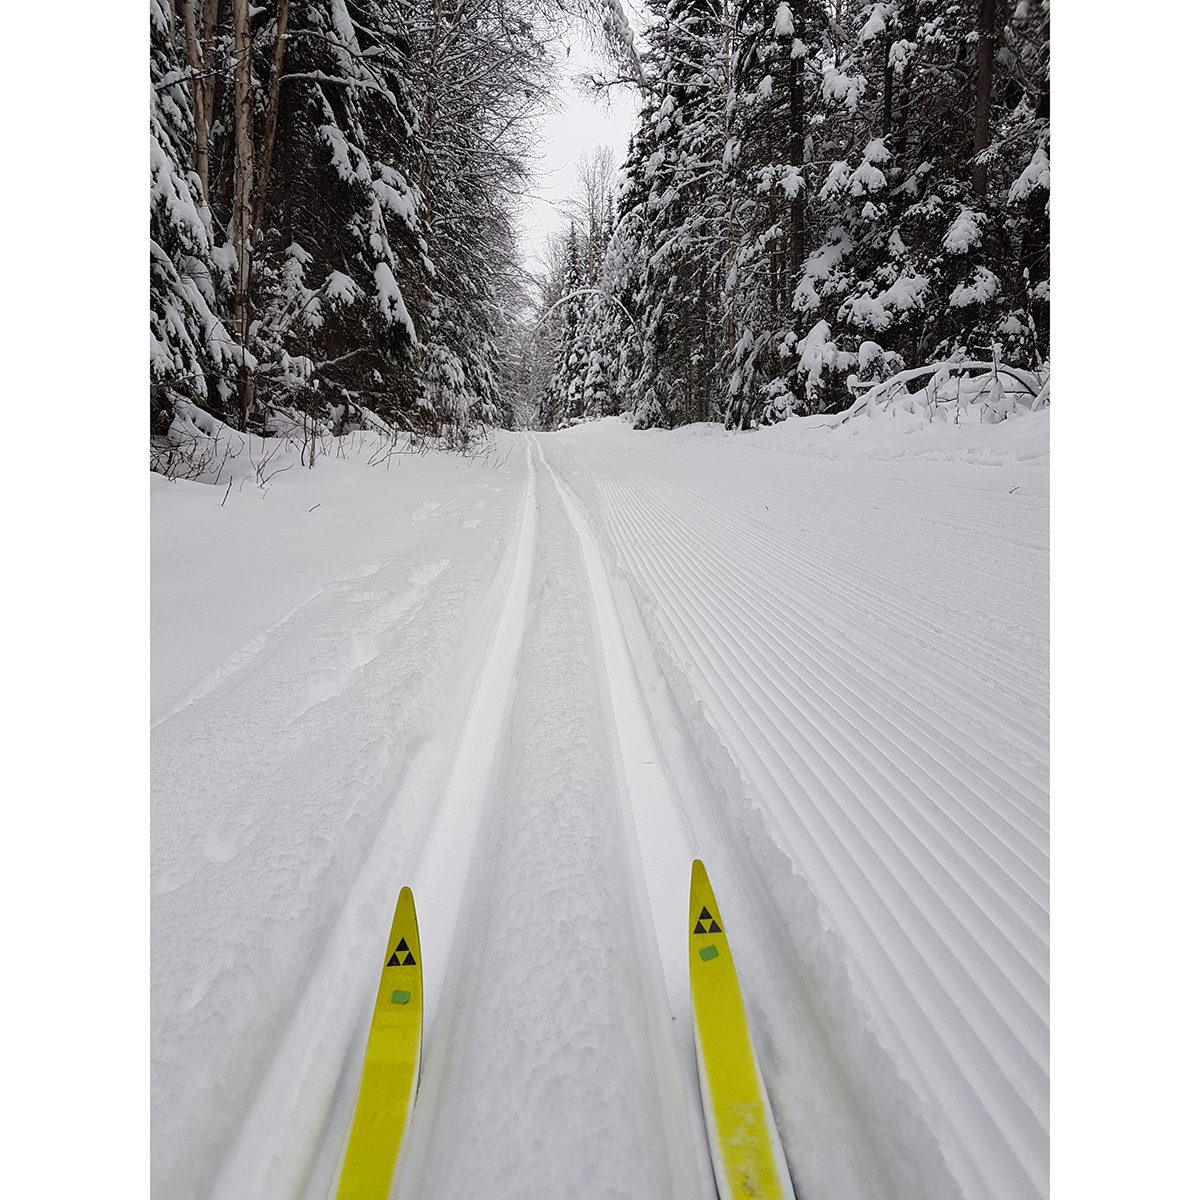 My Happy Place - Cross Country Ski Trails